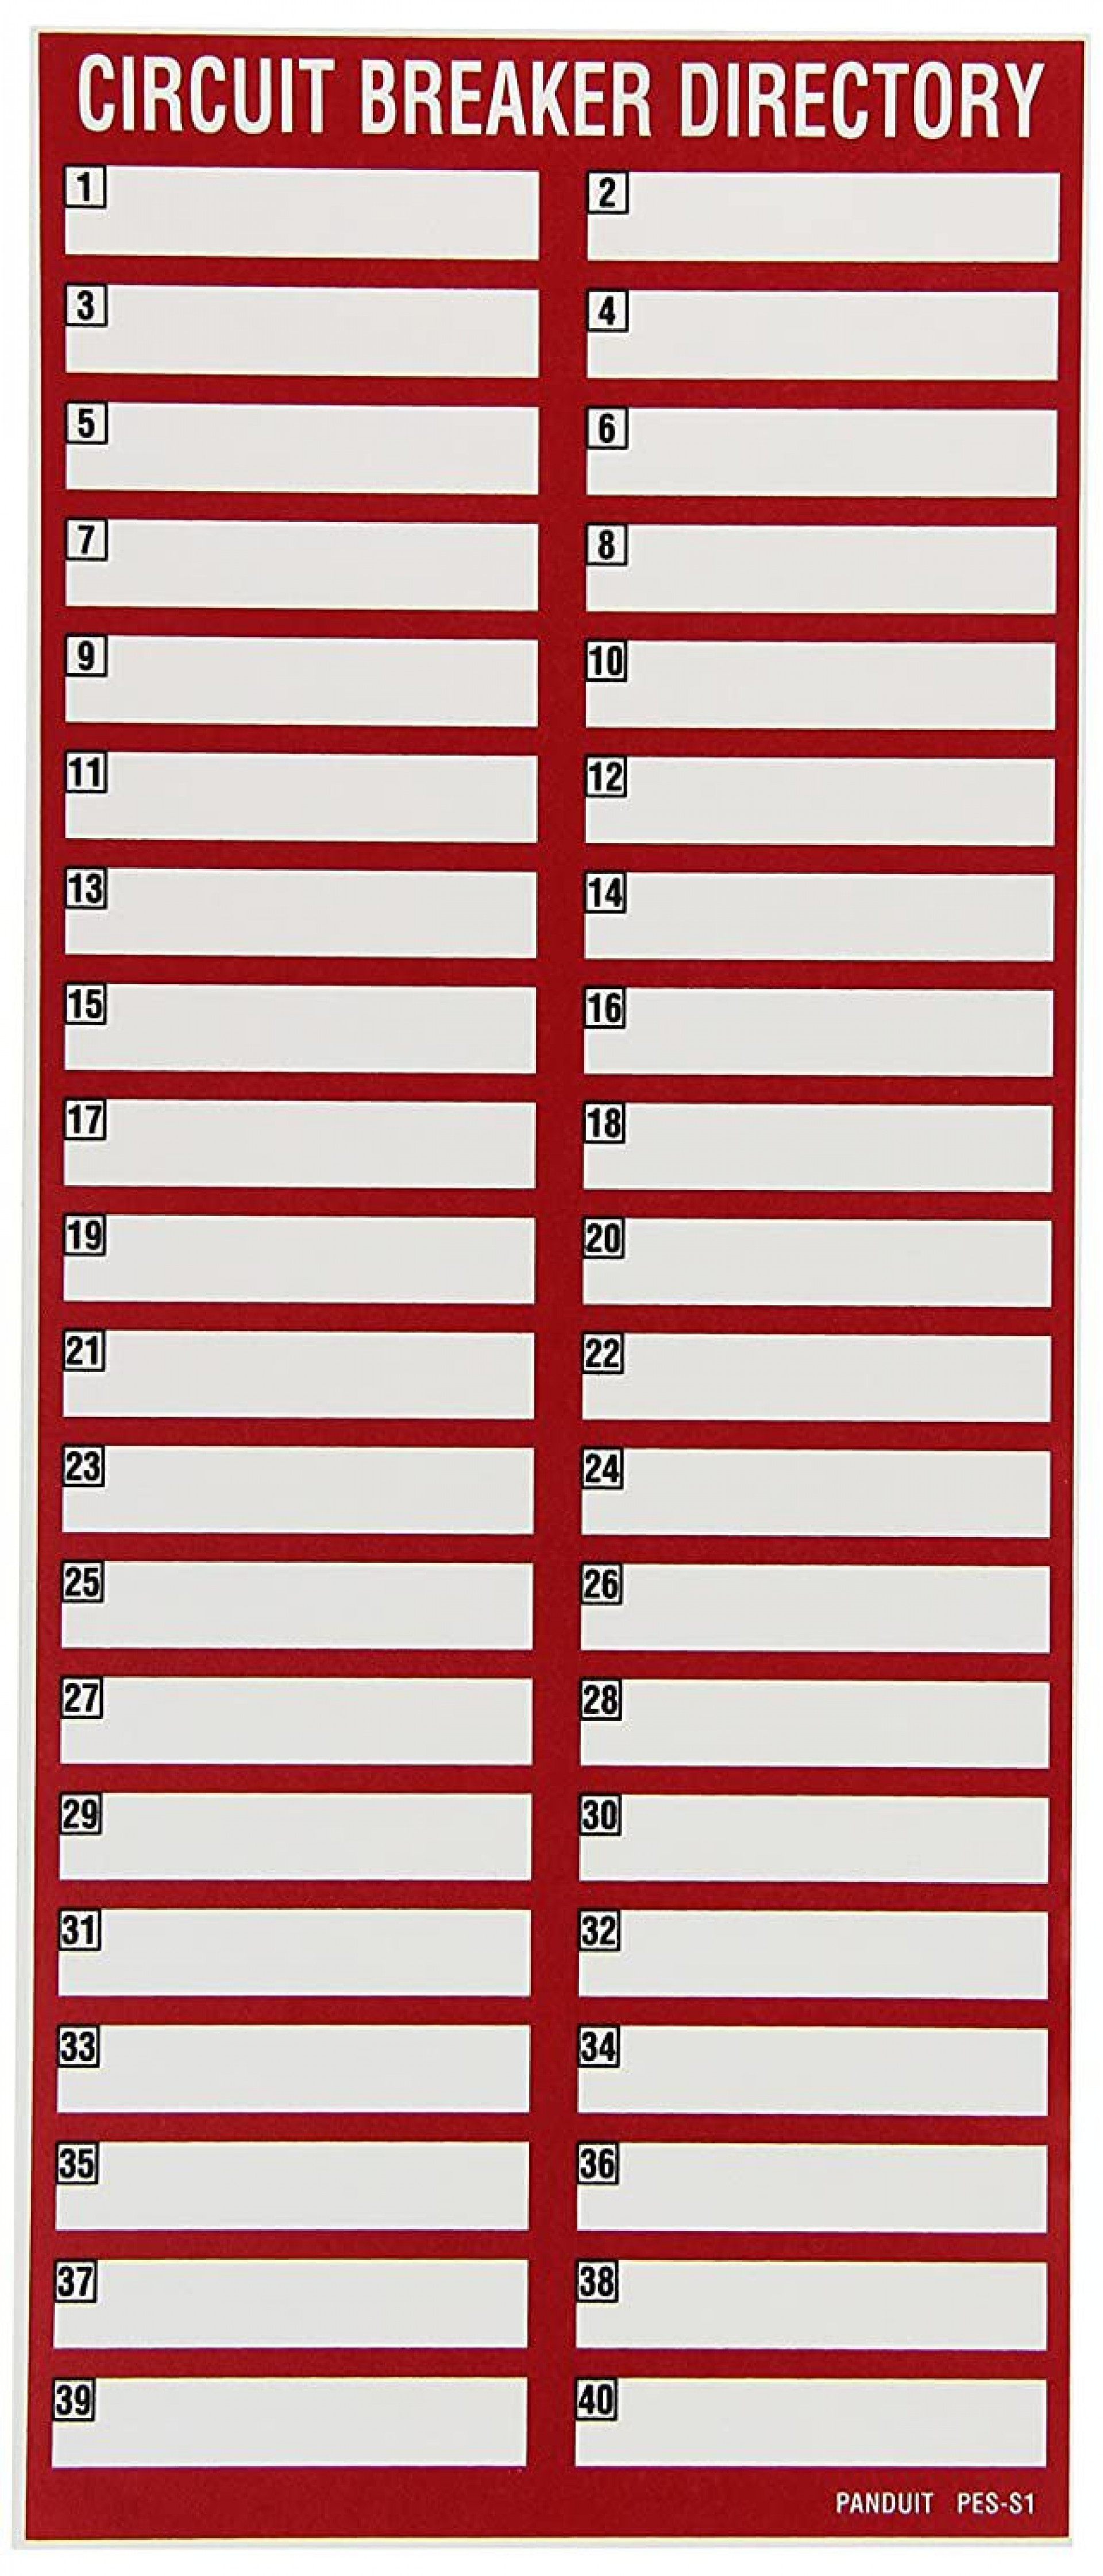 002 Dreaded Electrical Panel Label Template Inspiration  Siemen Free Excel1920